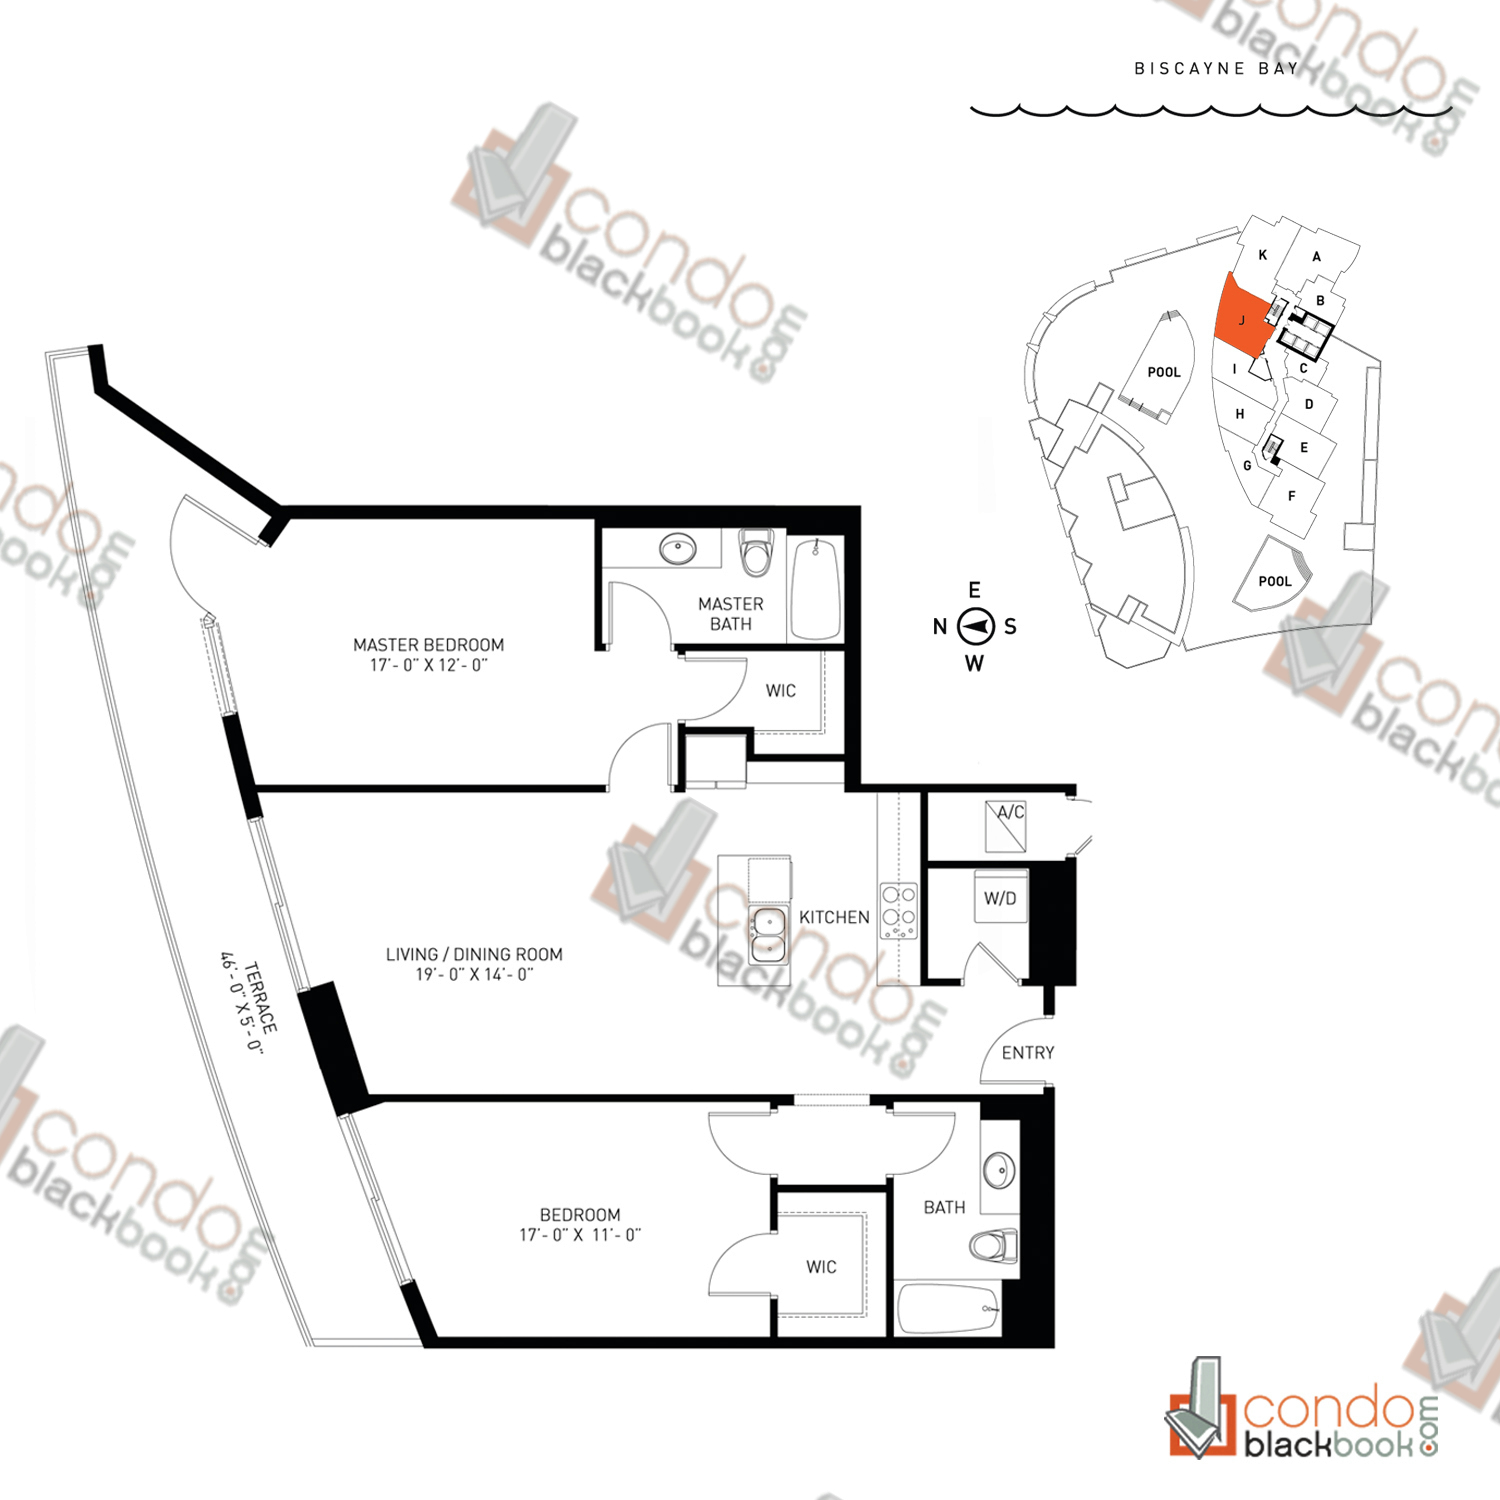 Floor plan for Quantum on the Bay Edgewater Miami, model Residence_J, line South Tower - 04, 2/2 bedrooms, 1,239 sq ft